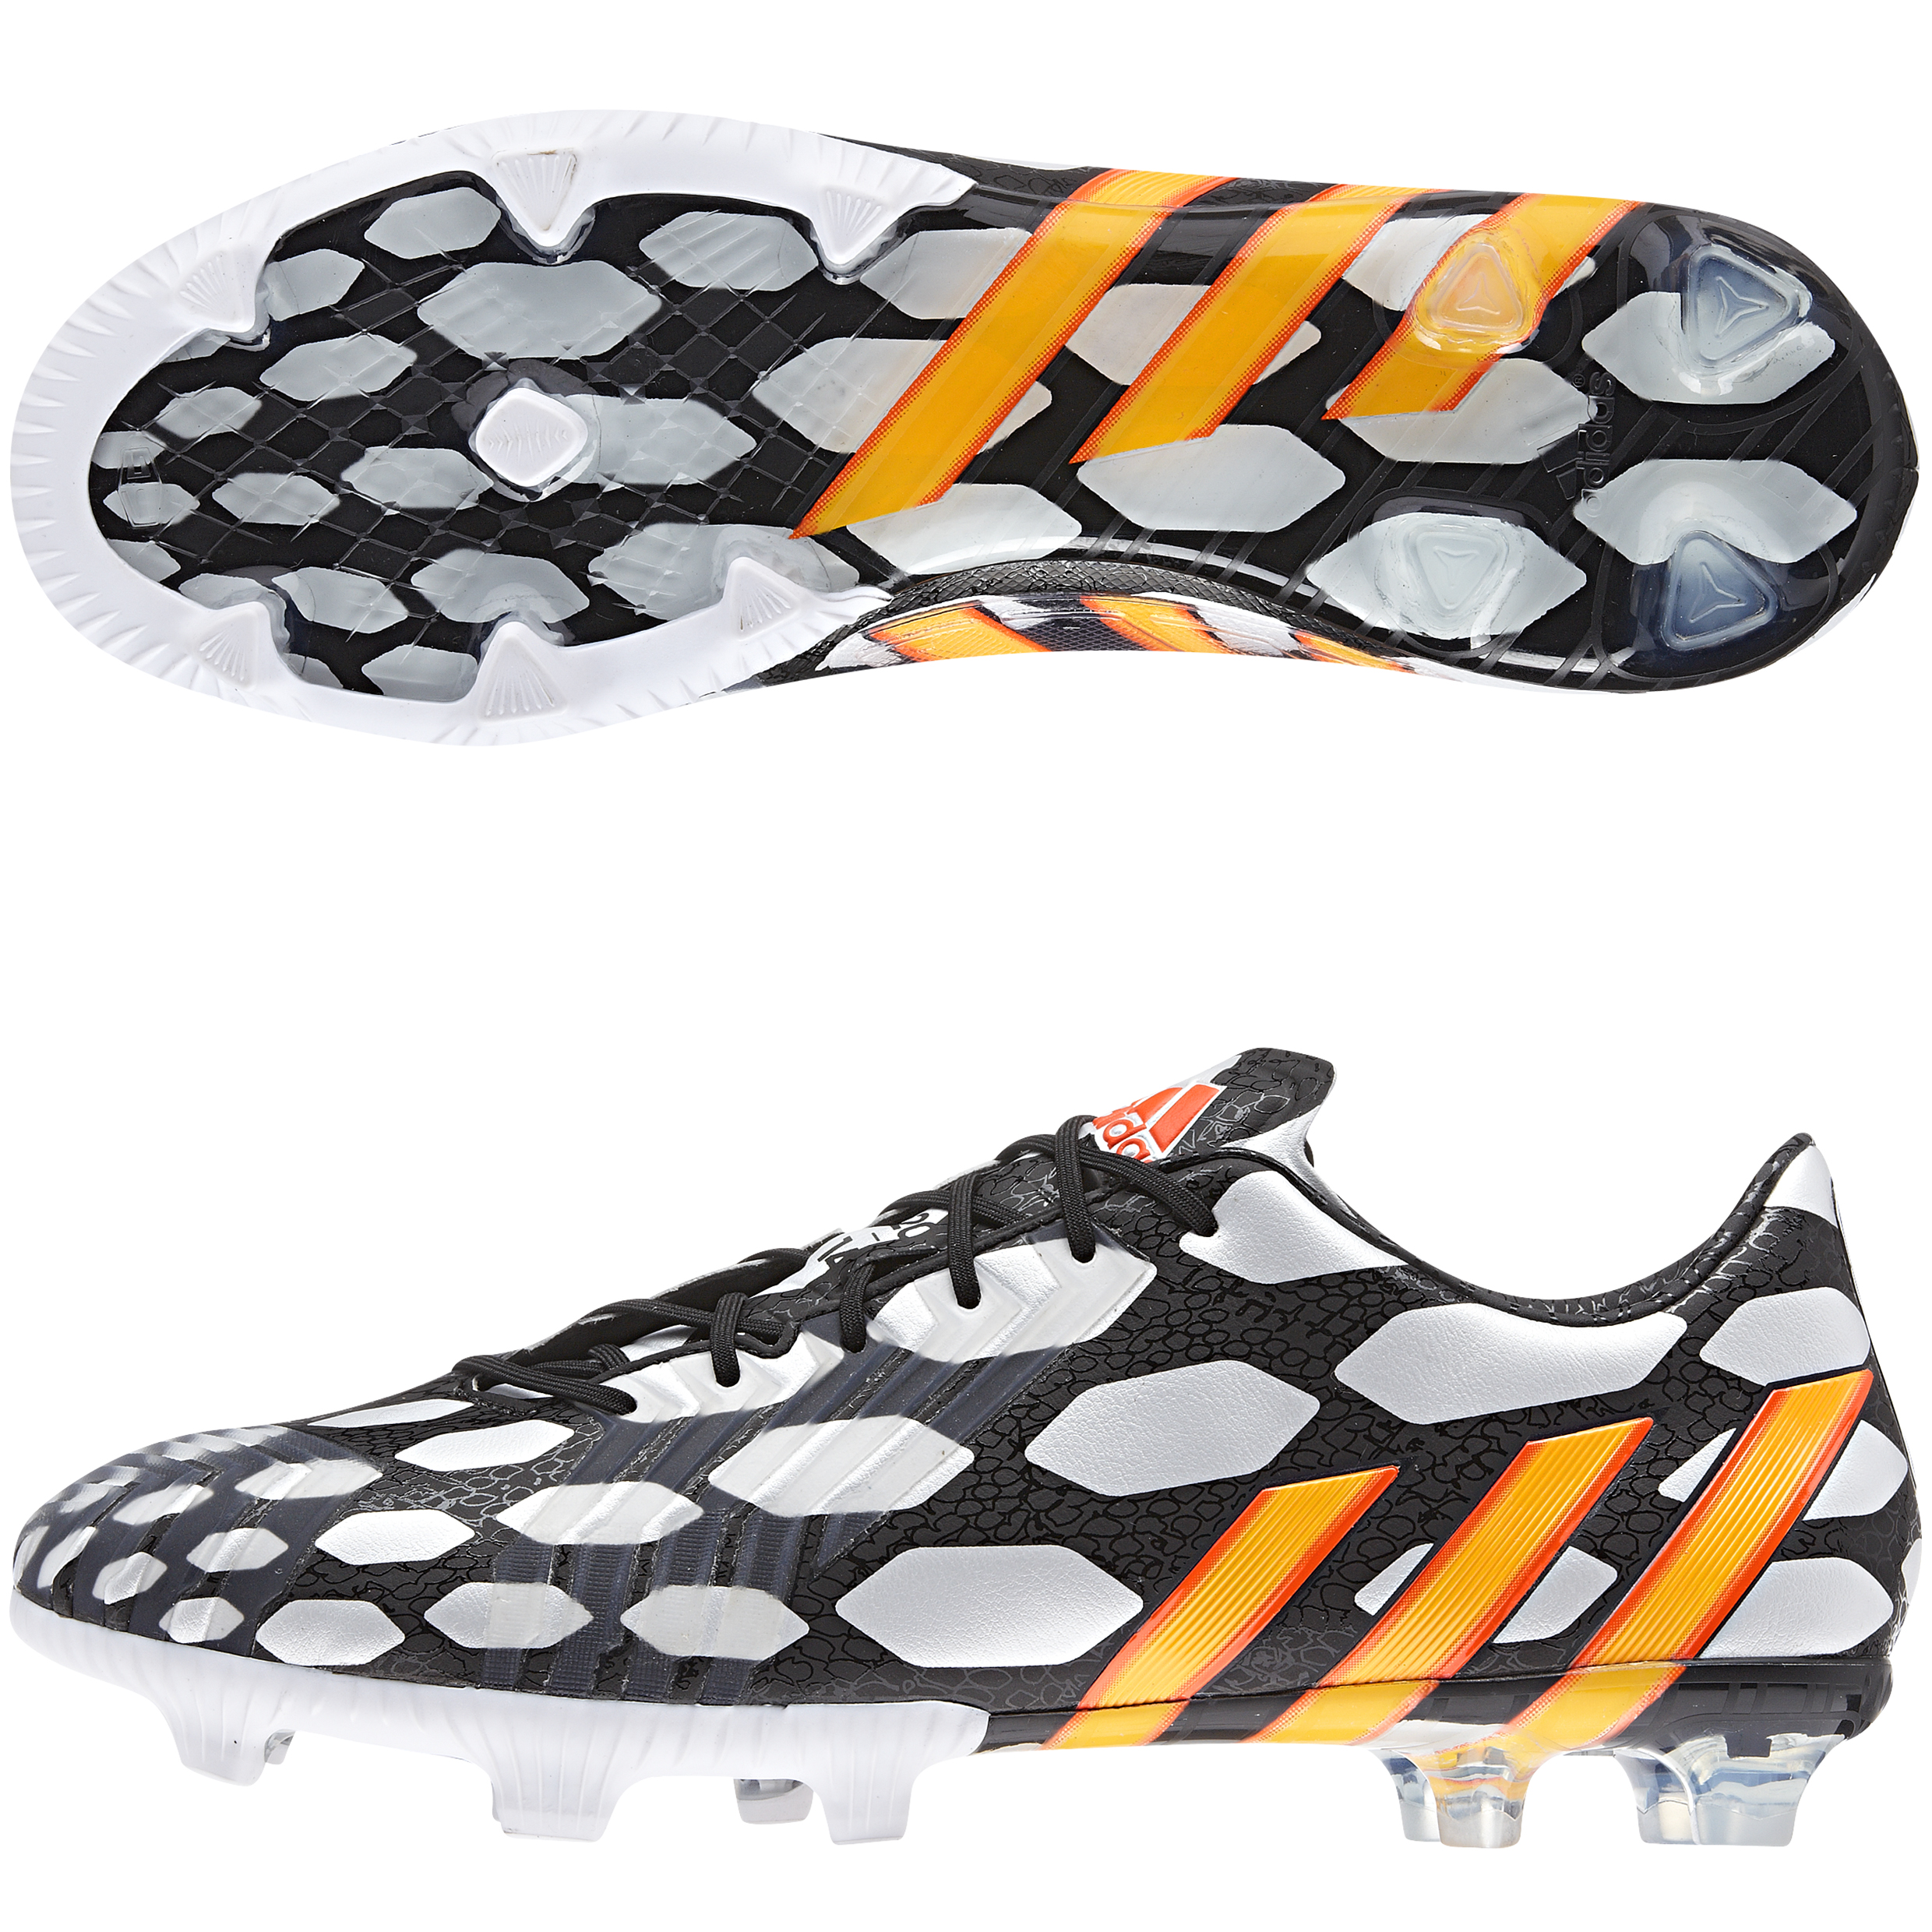 Predator LZ World Cup 2014 FG Black